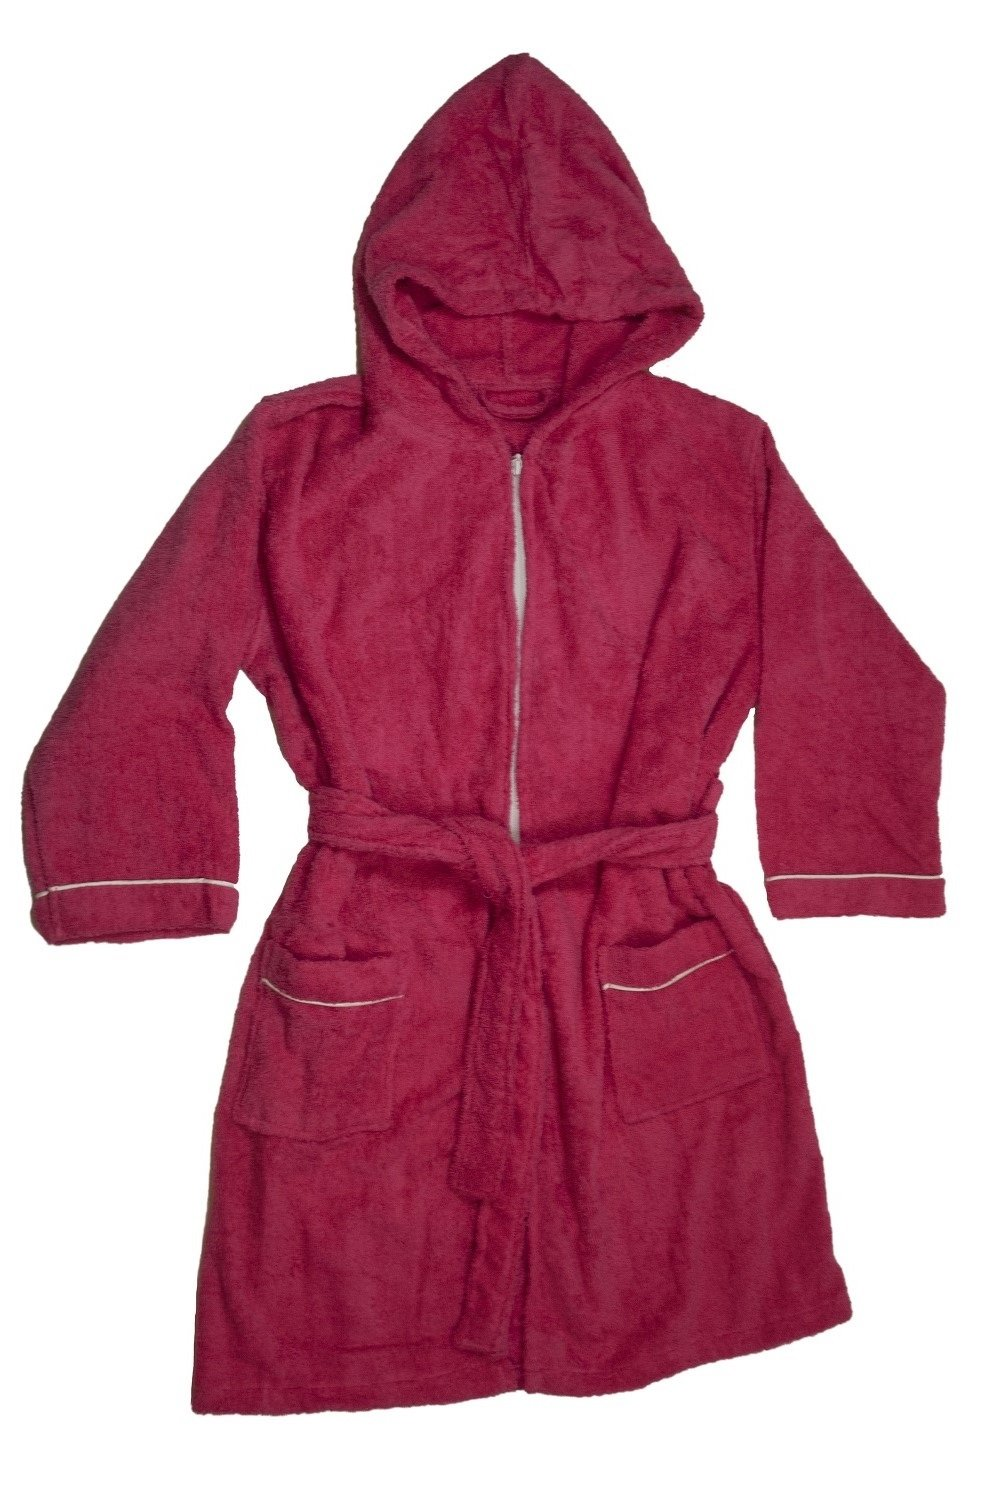 Boys Terry Cloth Hooded Bathrobe 100% Cotton Terry Coverup (6-7girls)